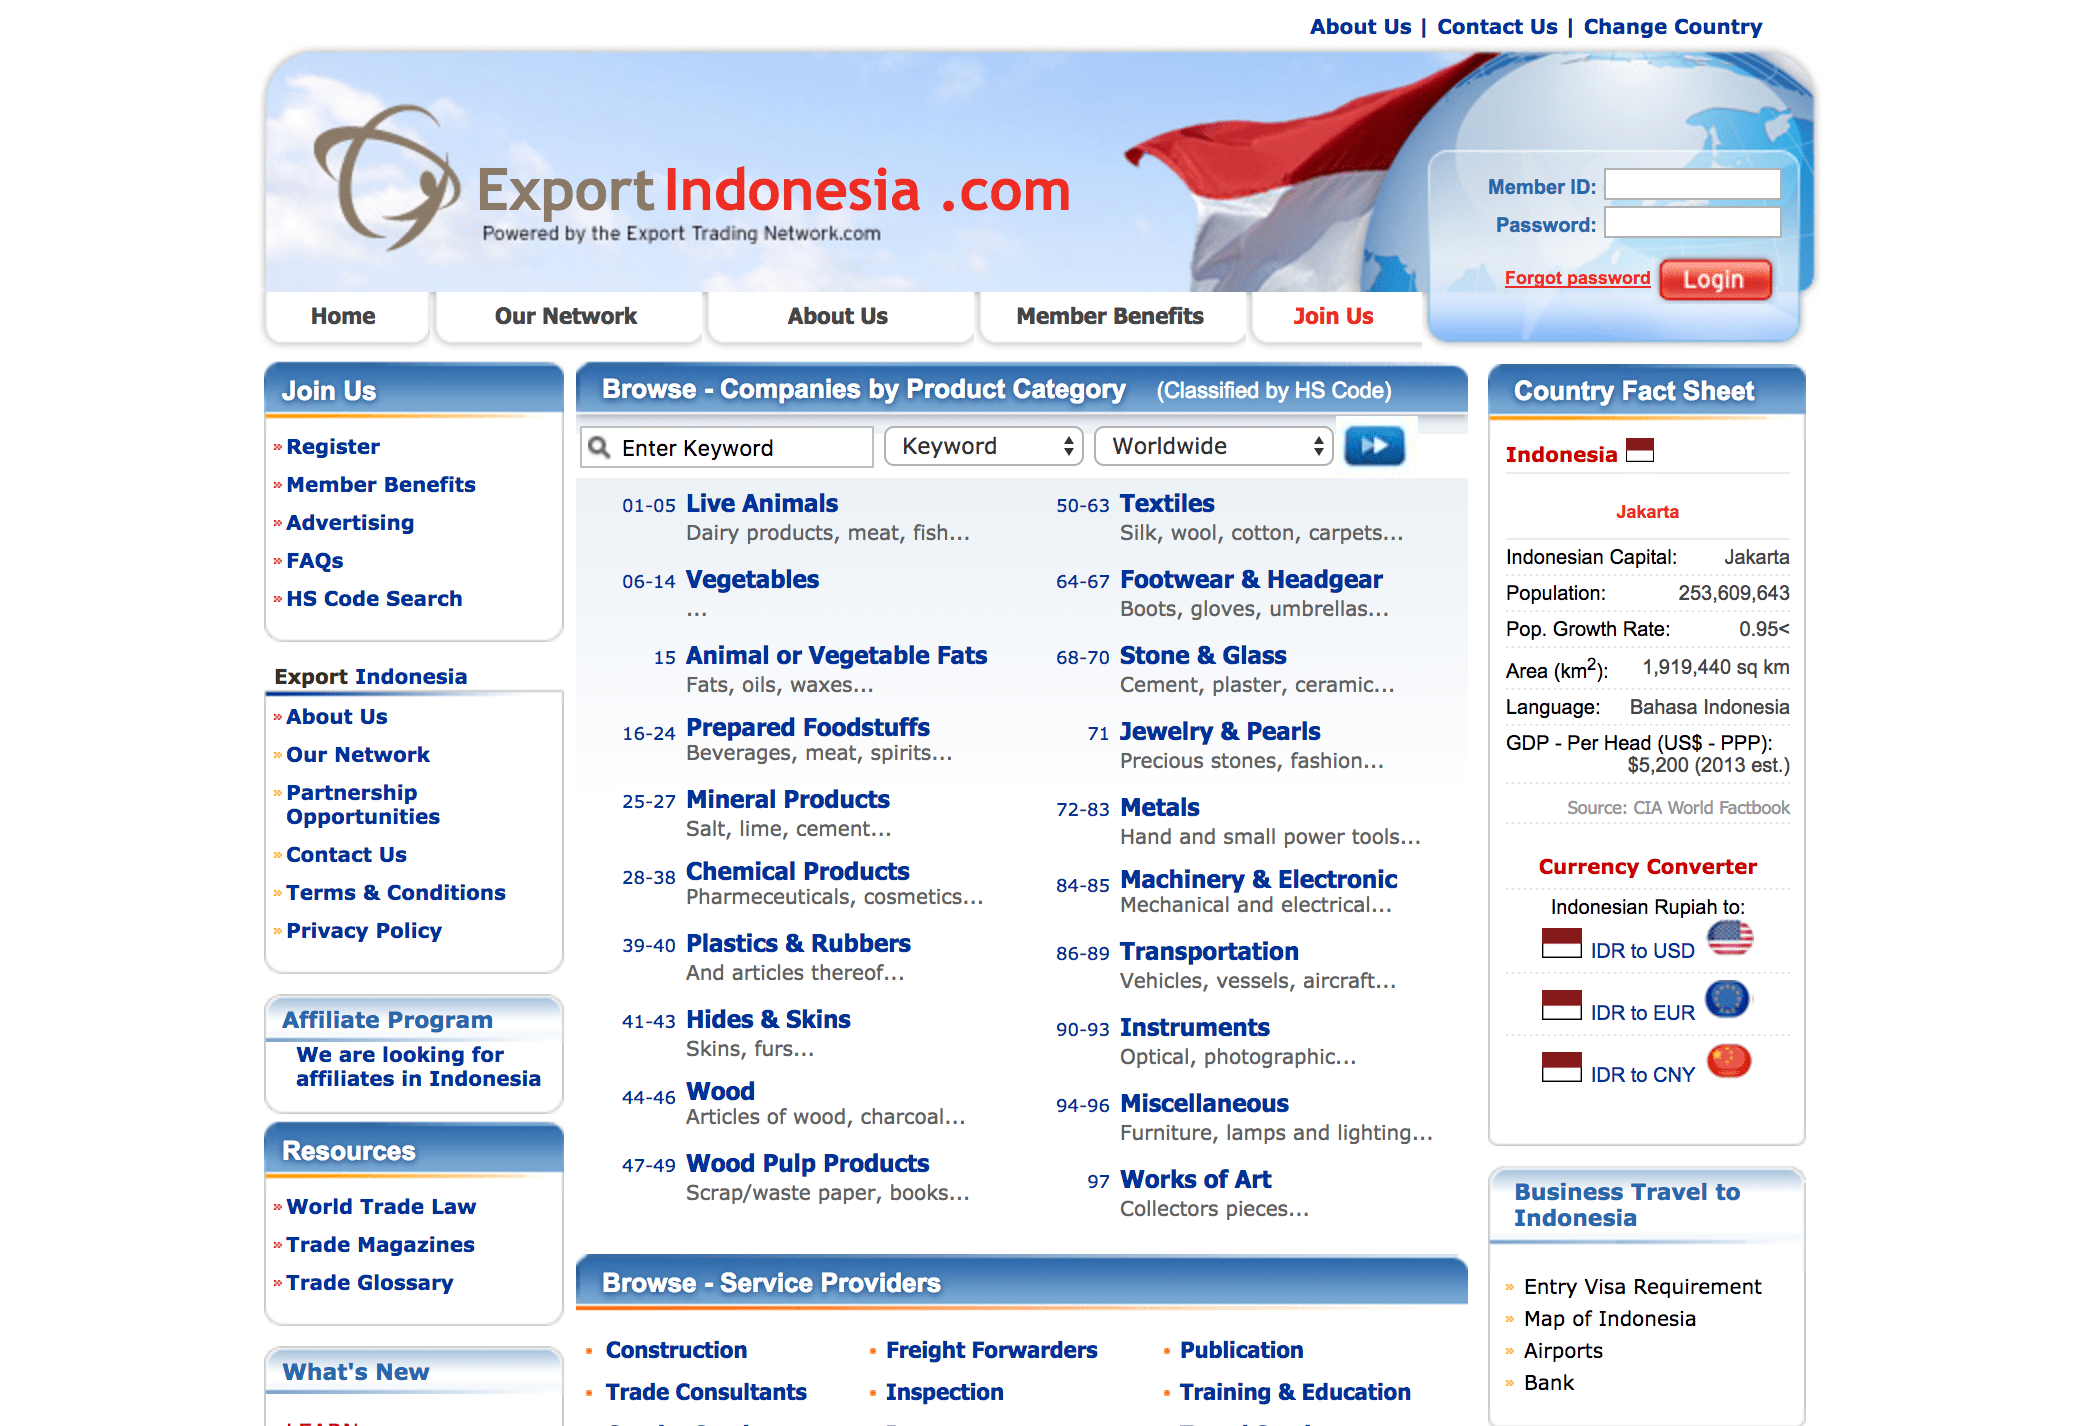 Top B2B Marketplaces in Indonesia - B2B sites for Import